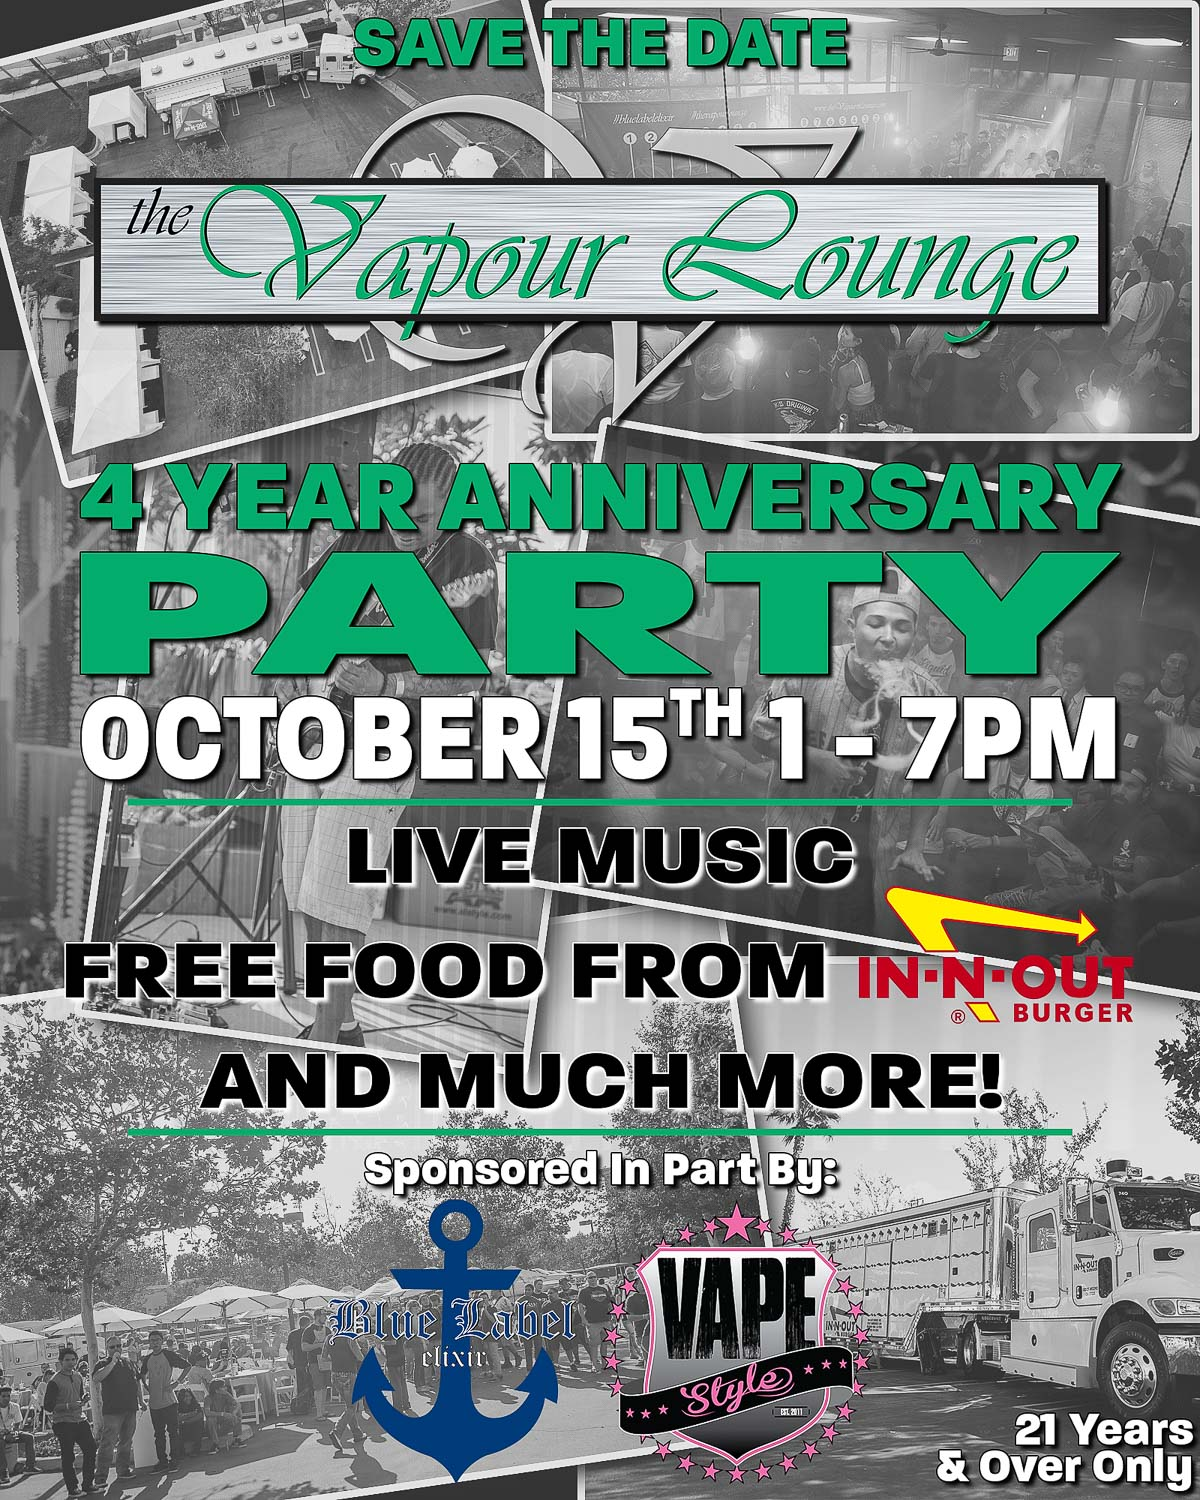 The Vapour Lounge 4 Year Anniversay Party | Saturday, October 15th, 2016